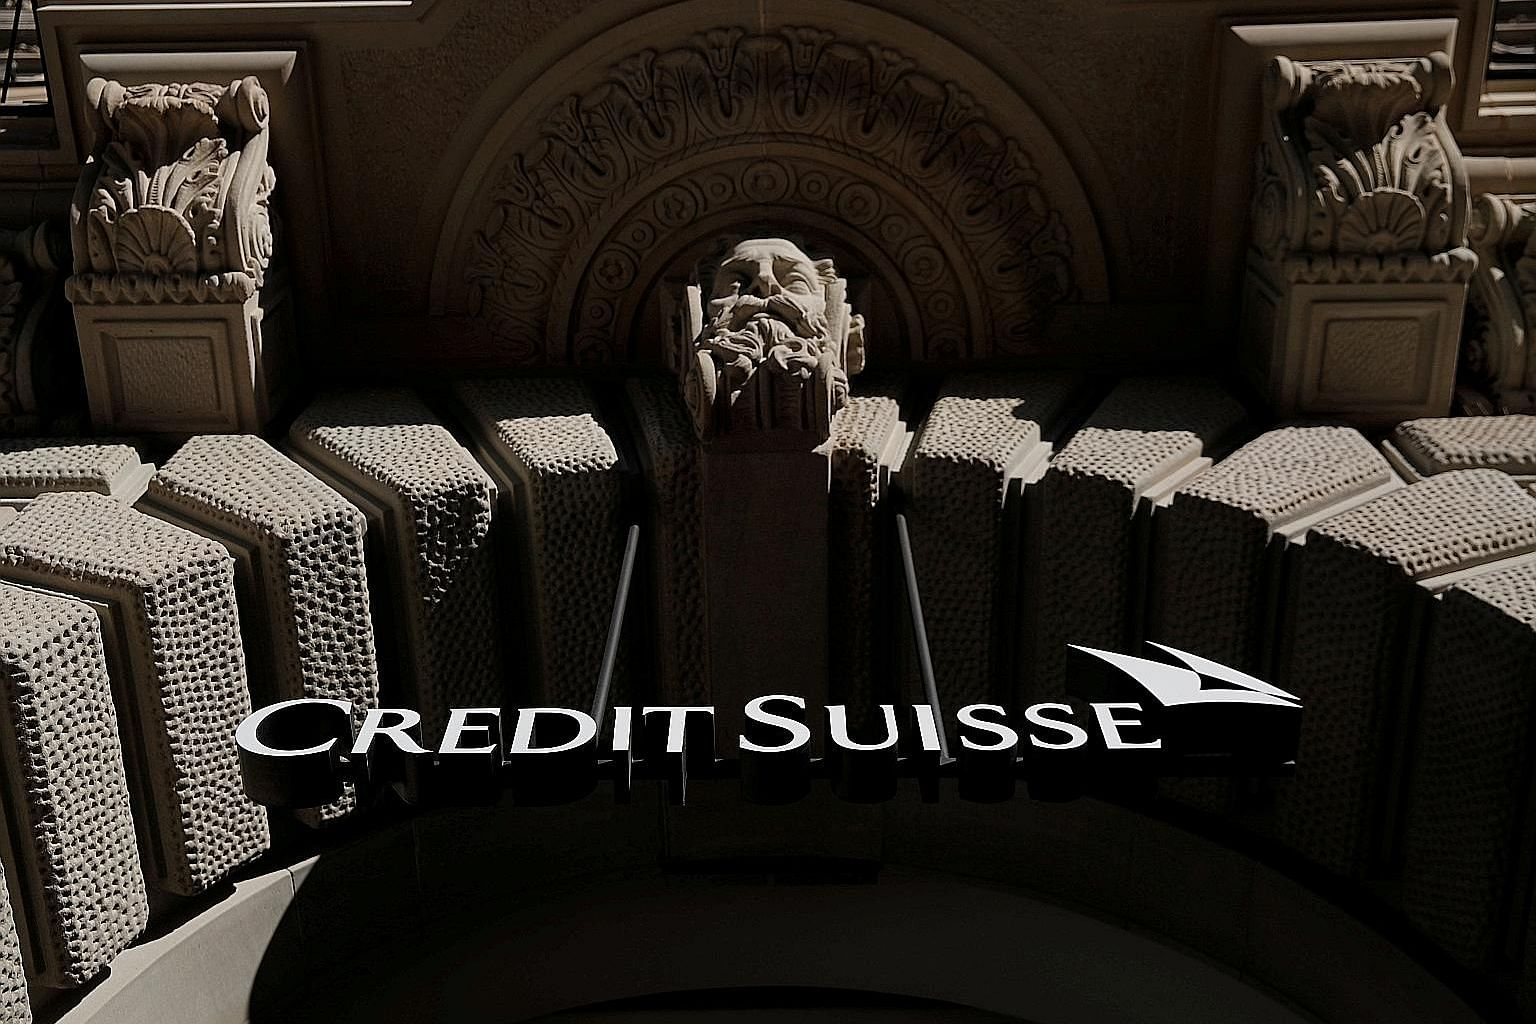 Credit Suisse will benefit from a reduction in travel as videoconferencing takes off, and in the future will operate fewer branches with online banking getting a lasting boost from lockdowns, says its CEO Thomas Gottstein. PHOTO: REUTERS